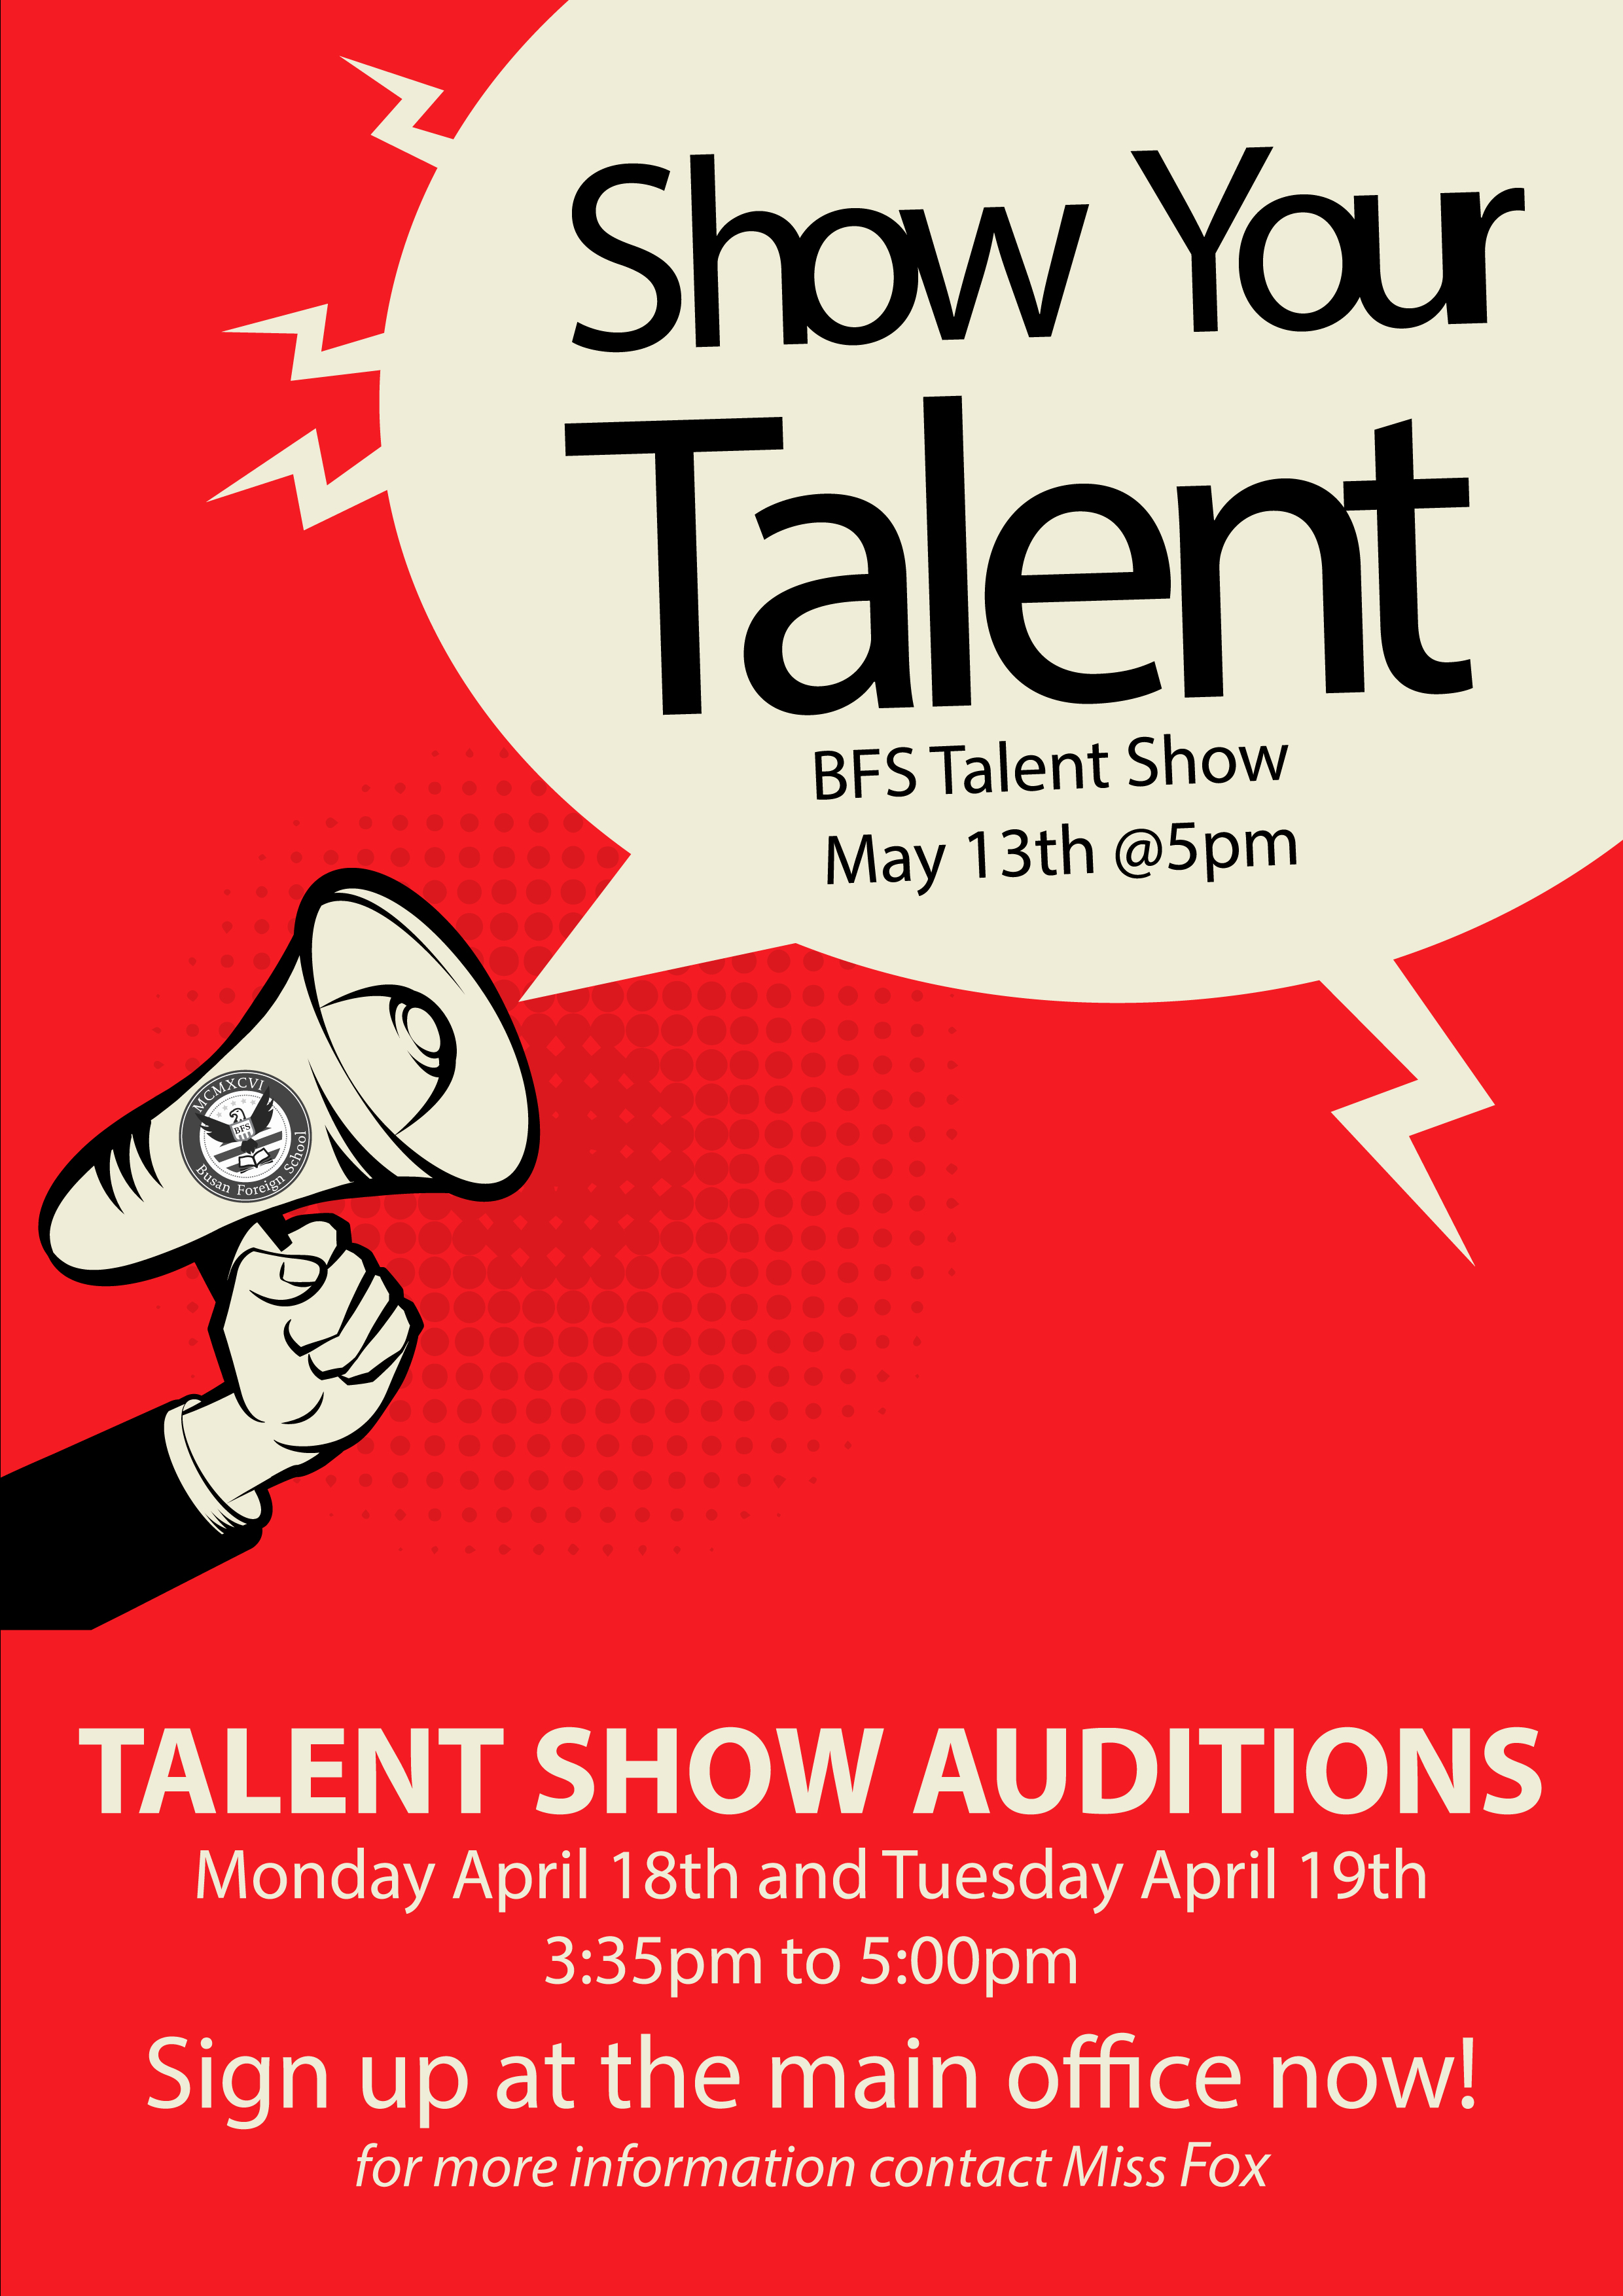 Free Talent Show Flyer Templates Unique Talent Show Audition – Busan foreign School